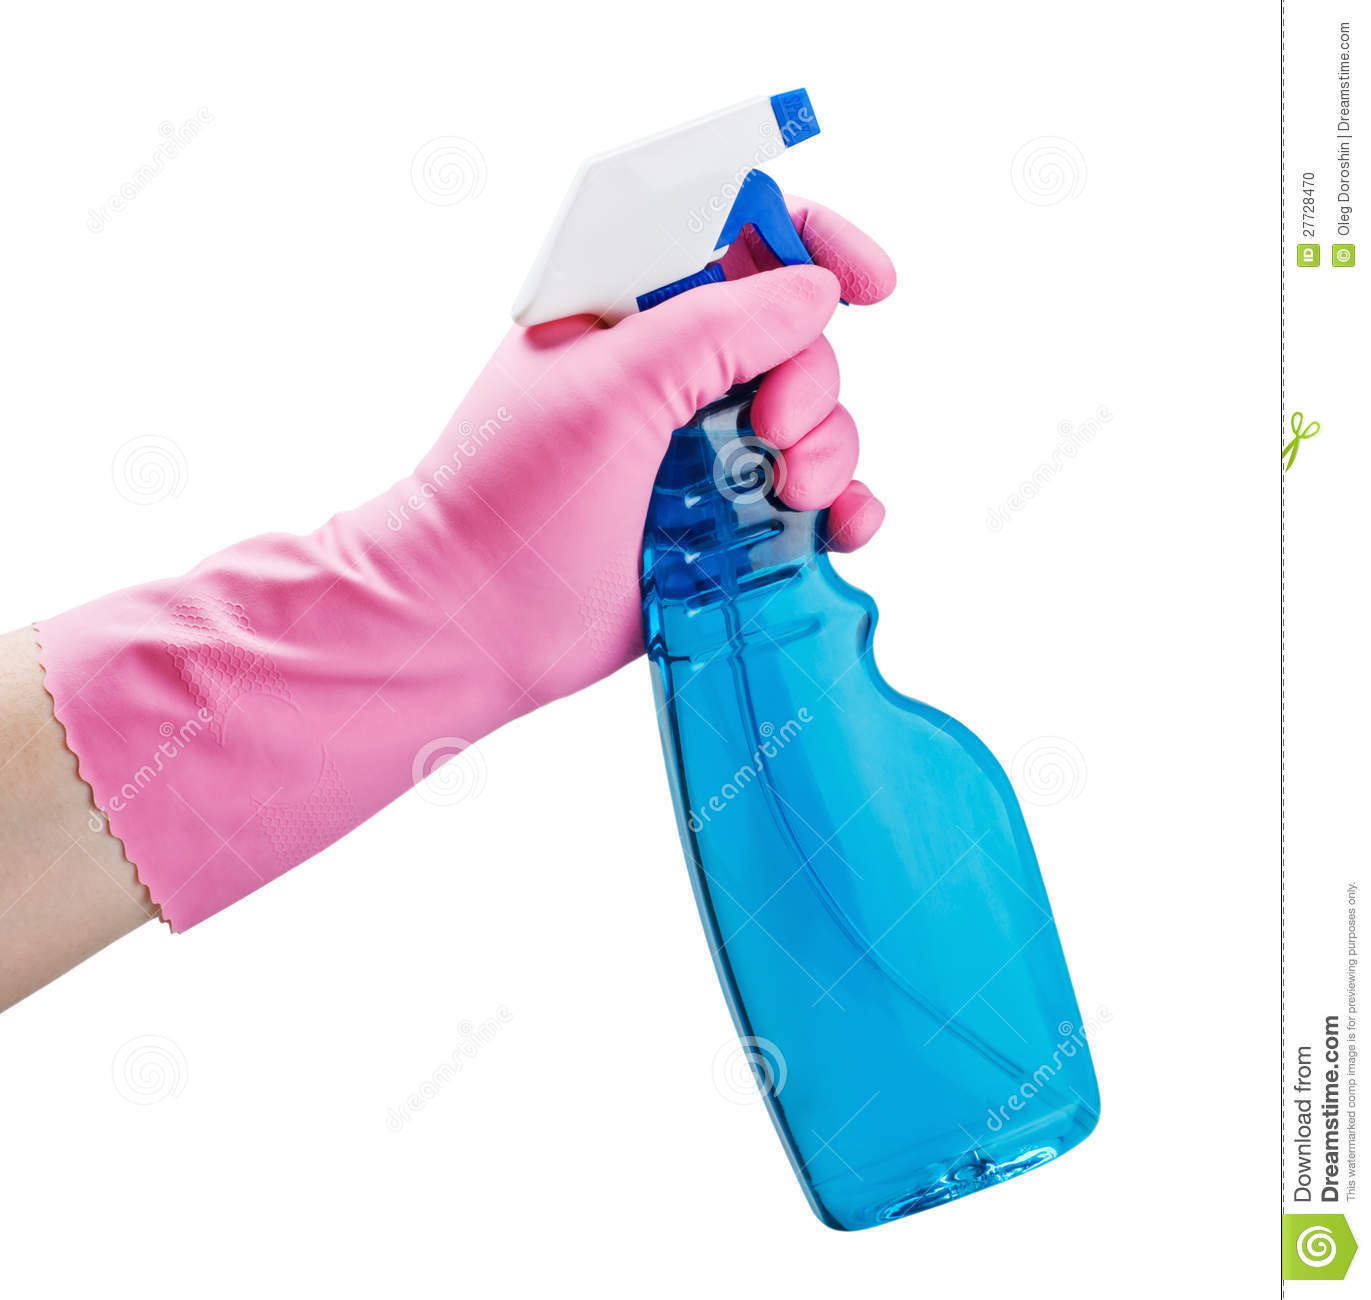 Gloved Hand Holding A Spray Bottle Stock Photo Image